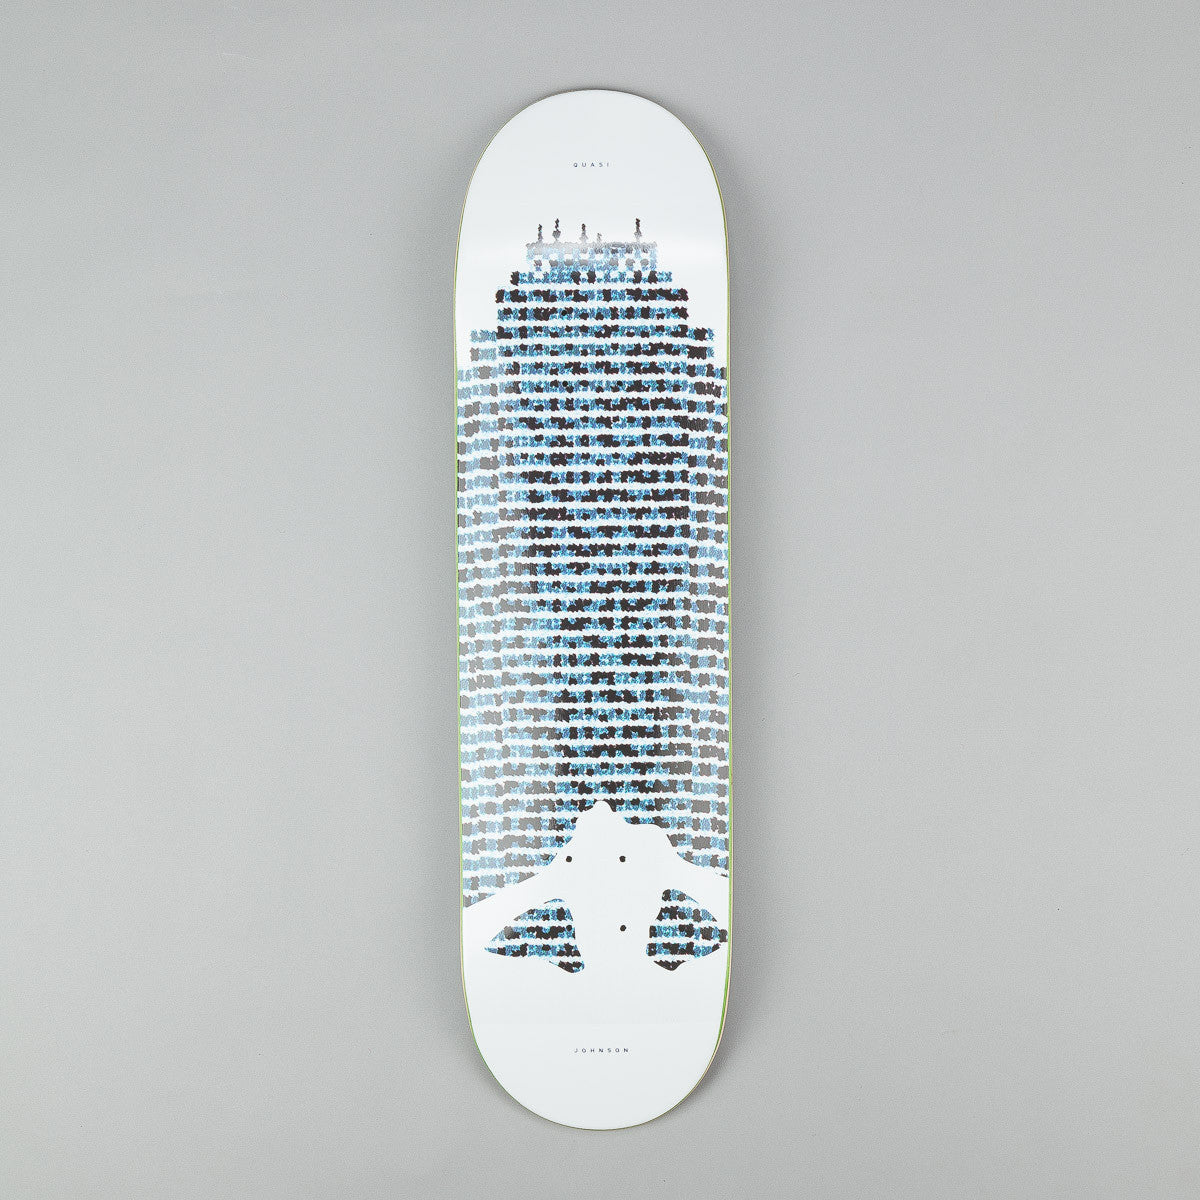 Quasi Skateboards Johnson 'Human' [One] Deck